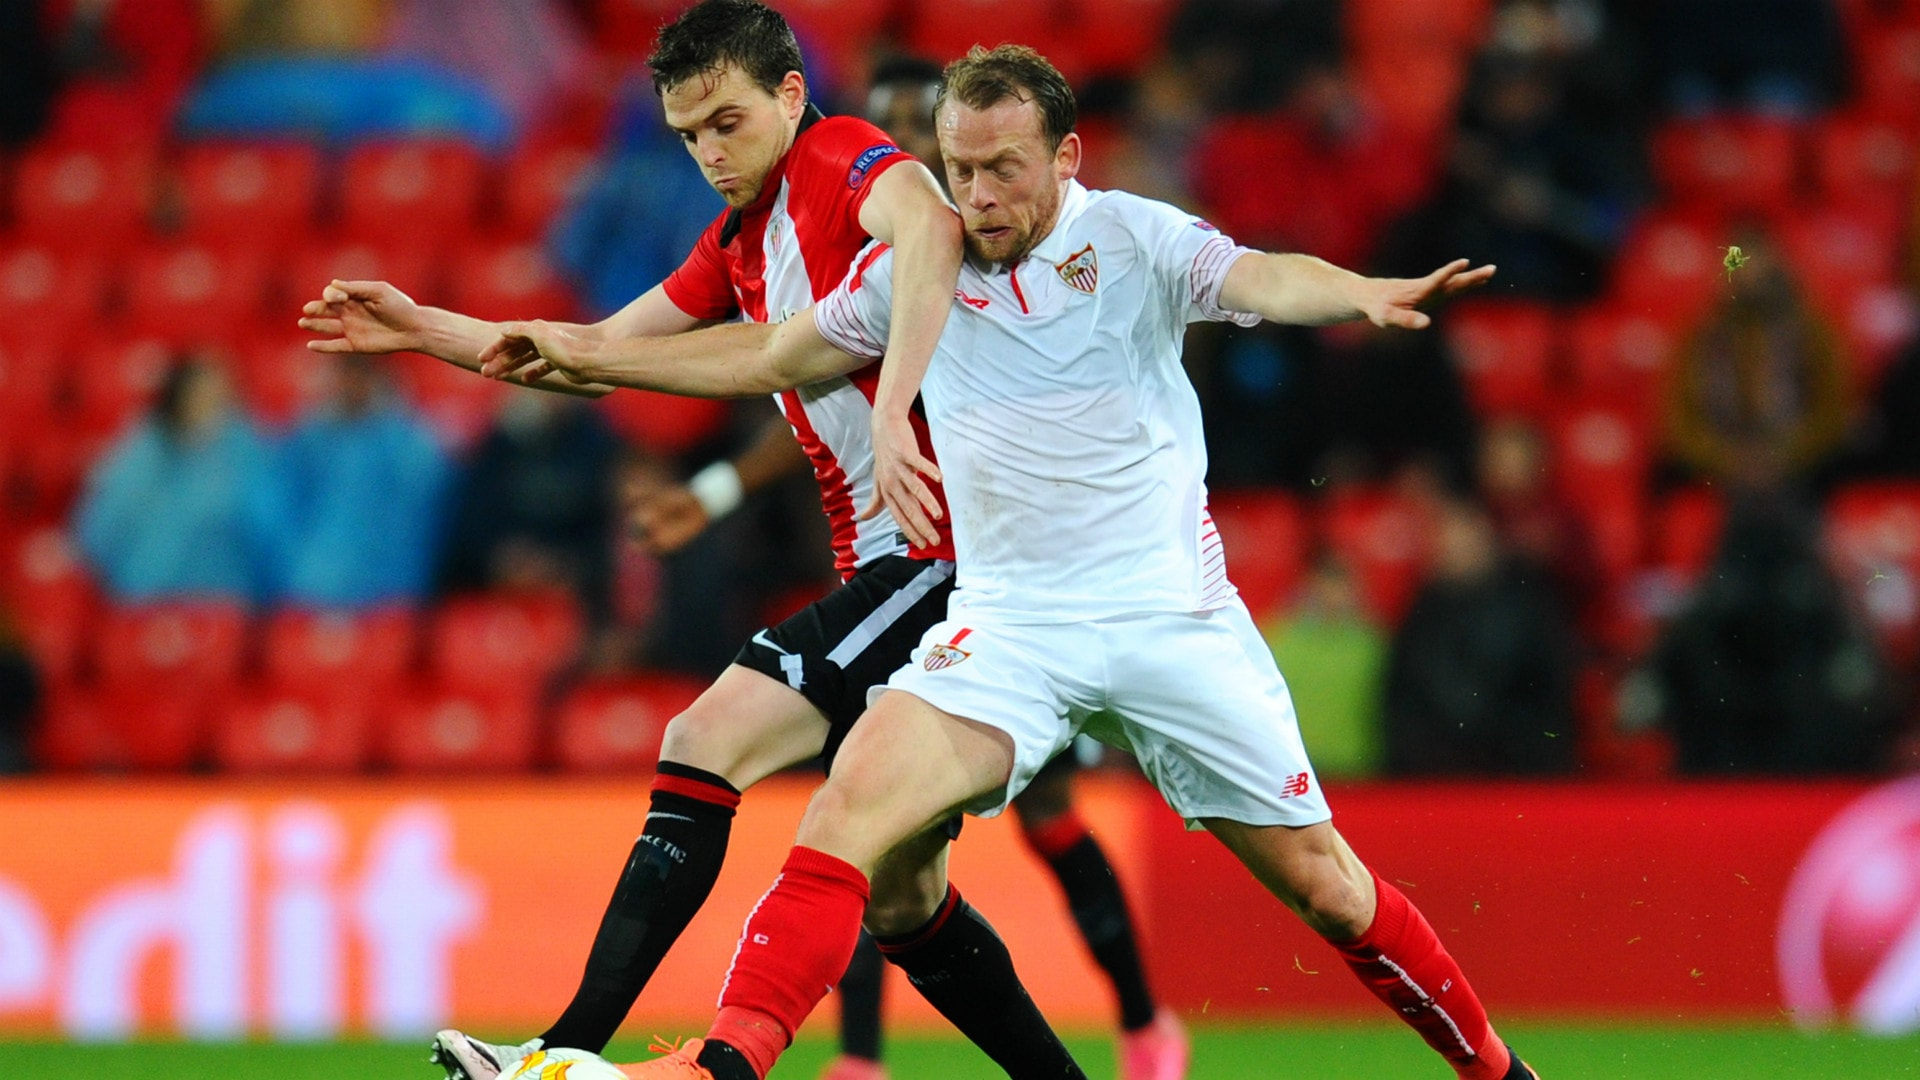 Sevilla vs Athletic Bilbao Betting Predictions